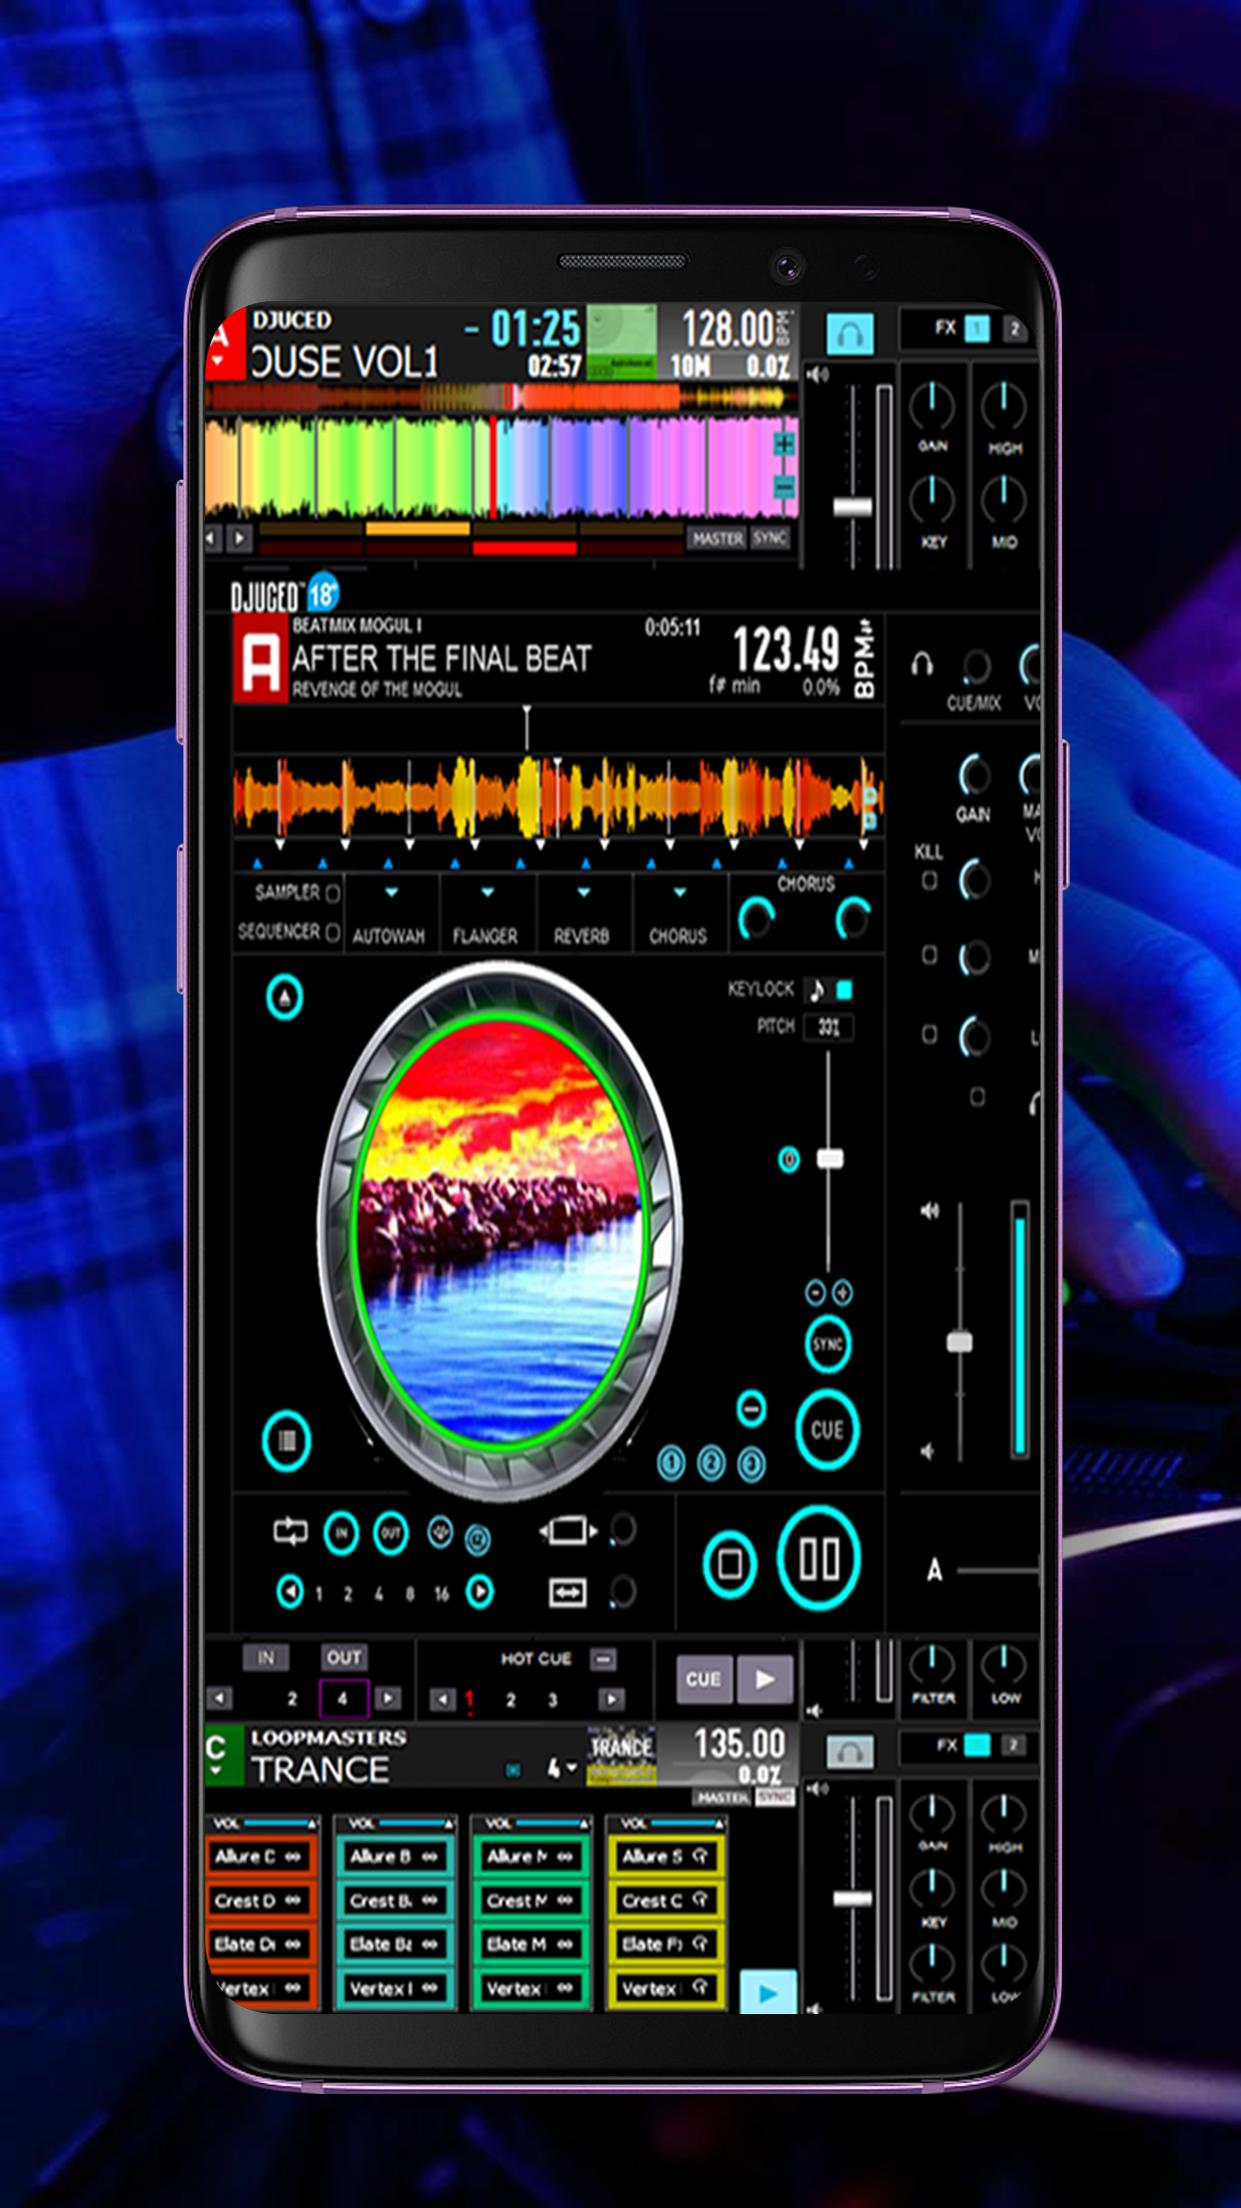 Dj mixer player app 2019 for Android - APK Download